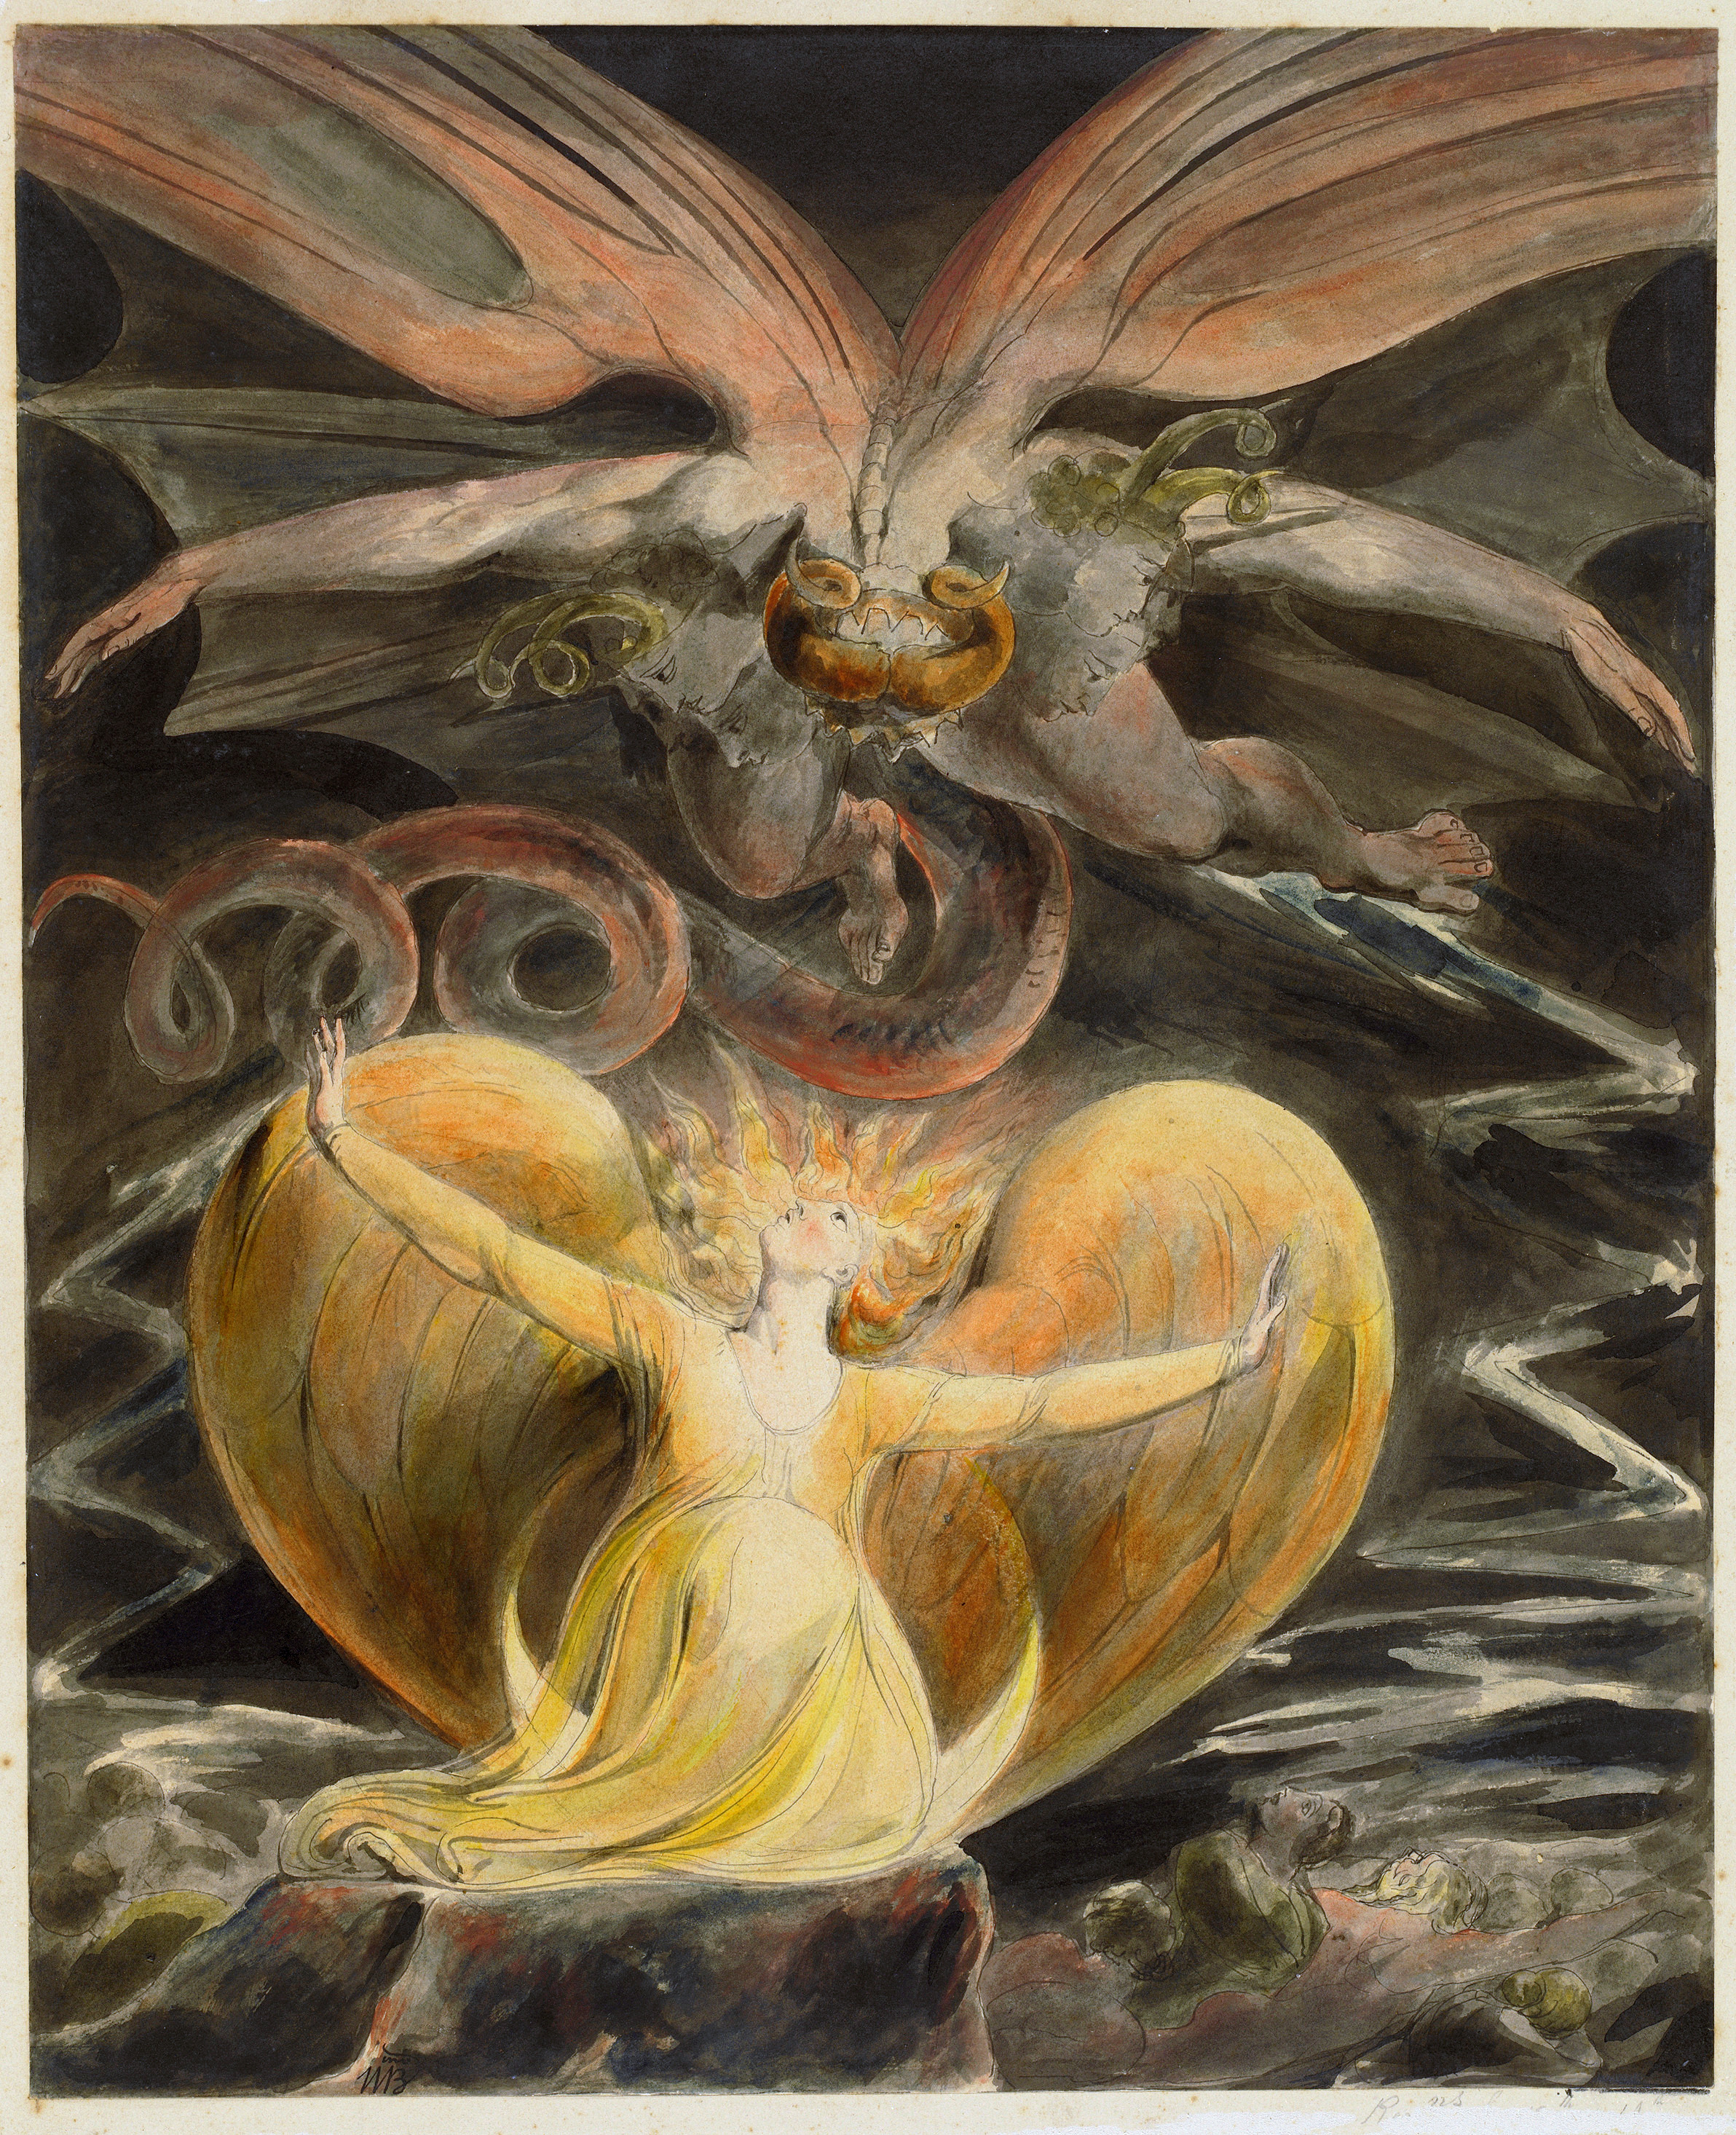 William Blake,  The Great Red Dragon and the Woman Clothed with Sun , 1805, National Gallery of Art, Washington DC.